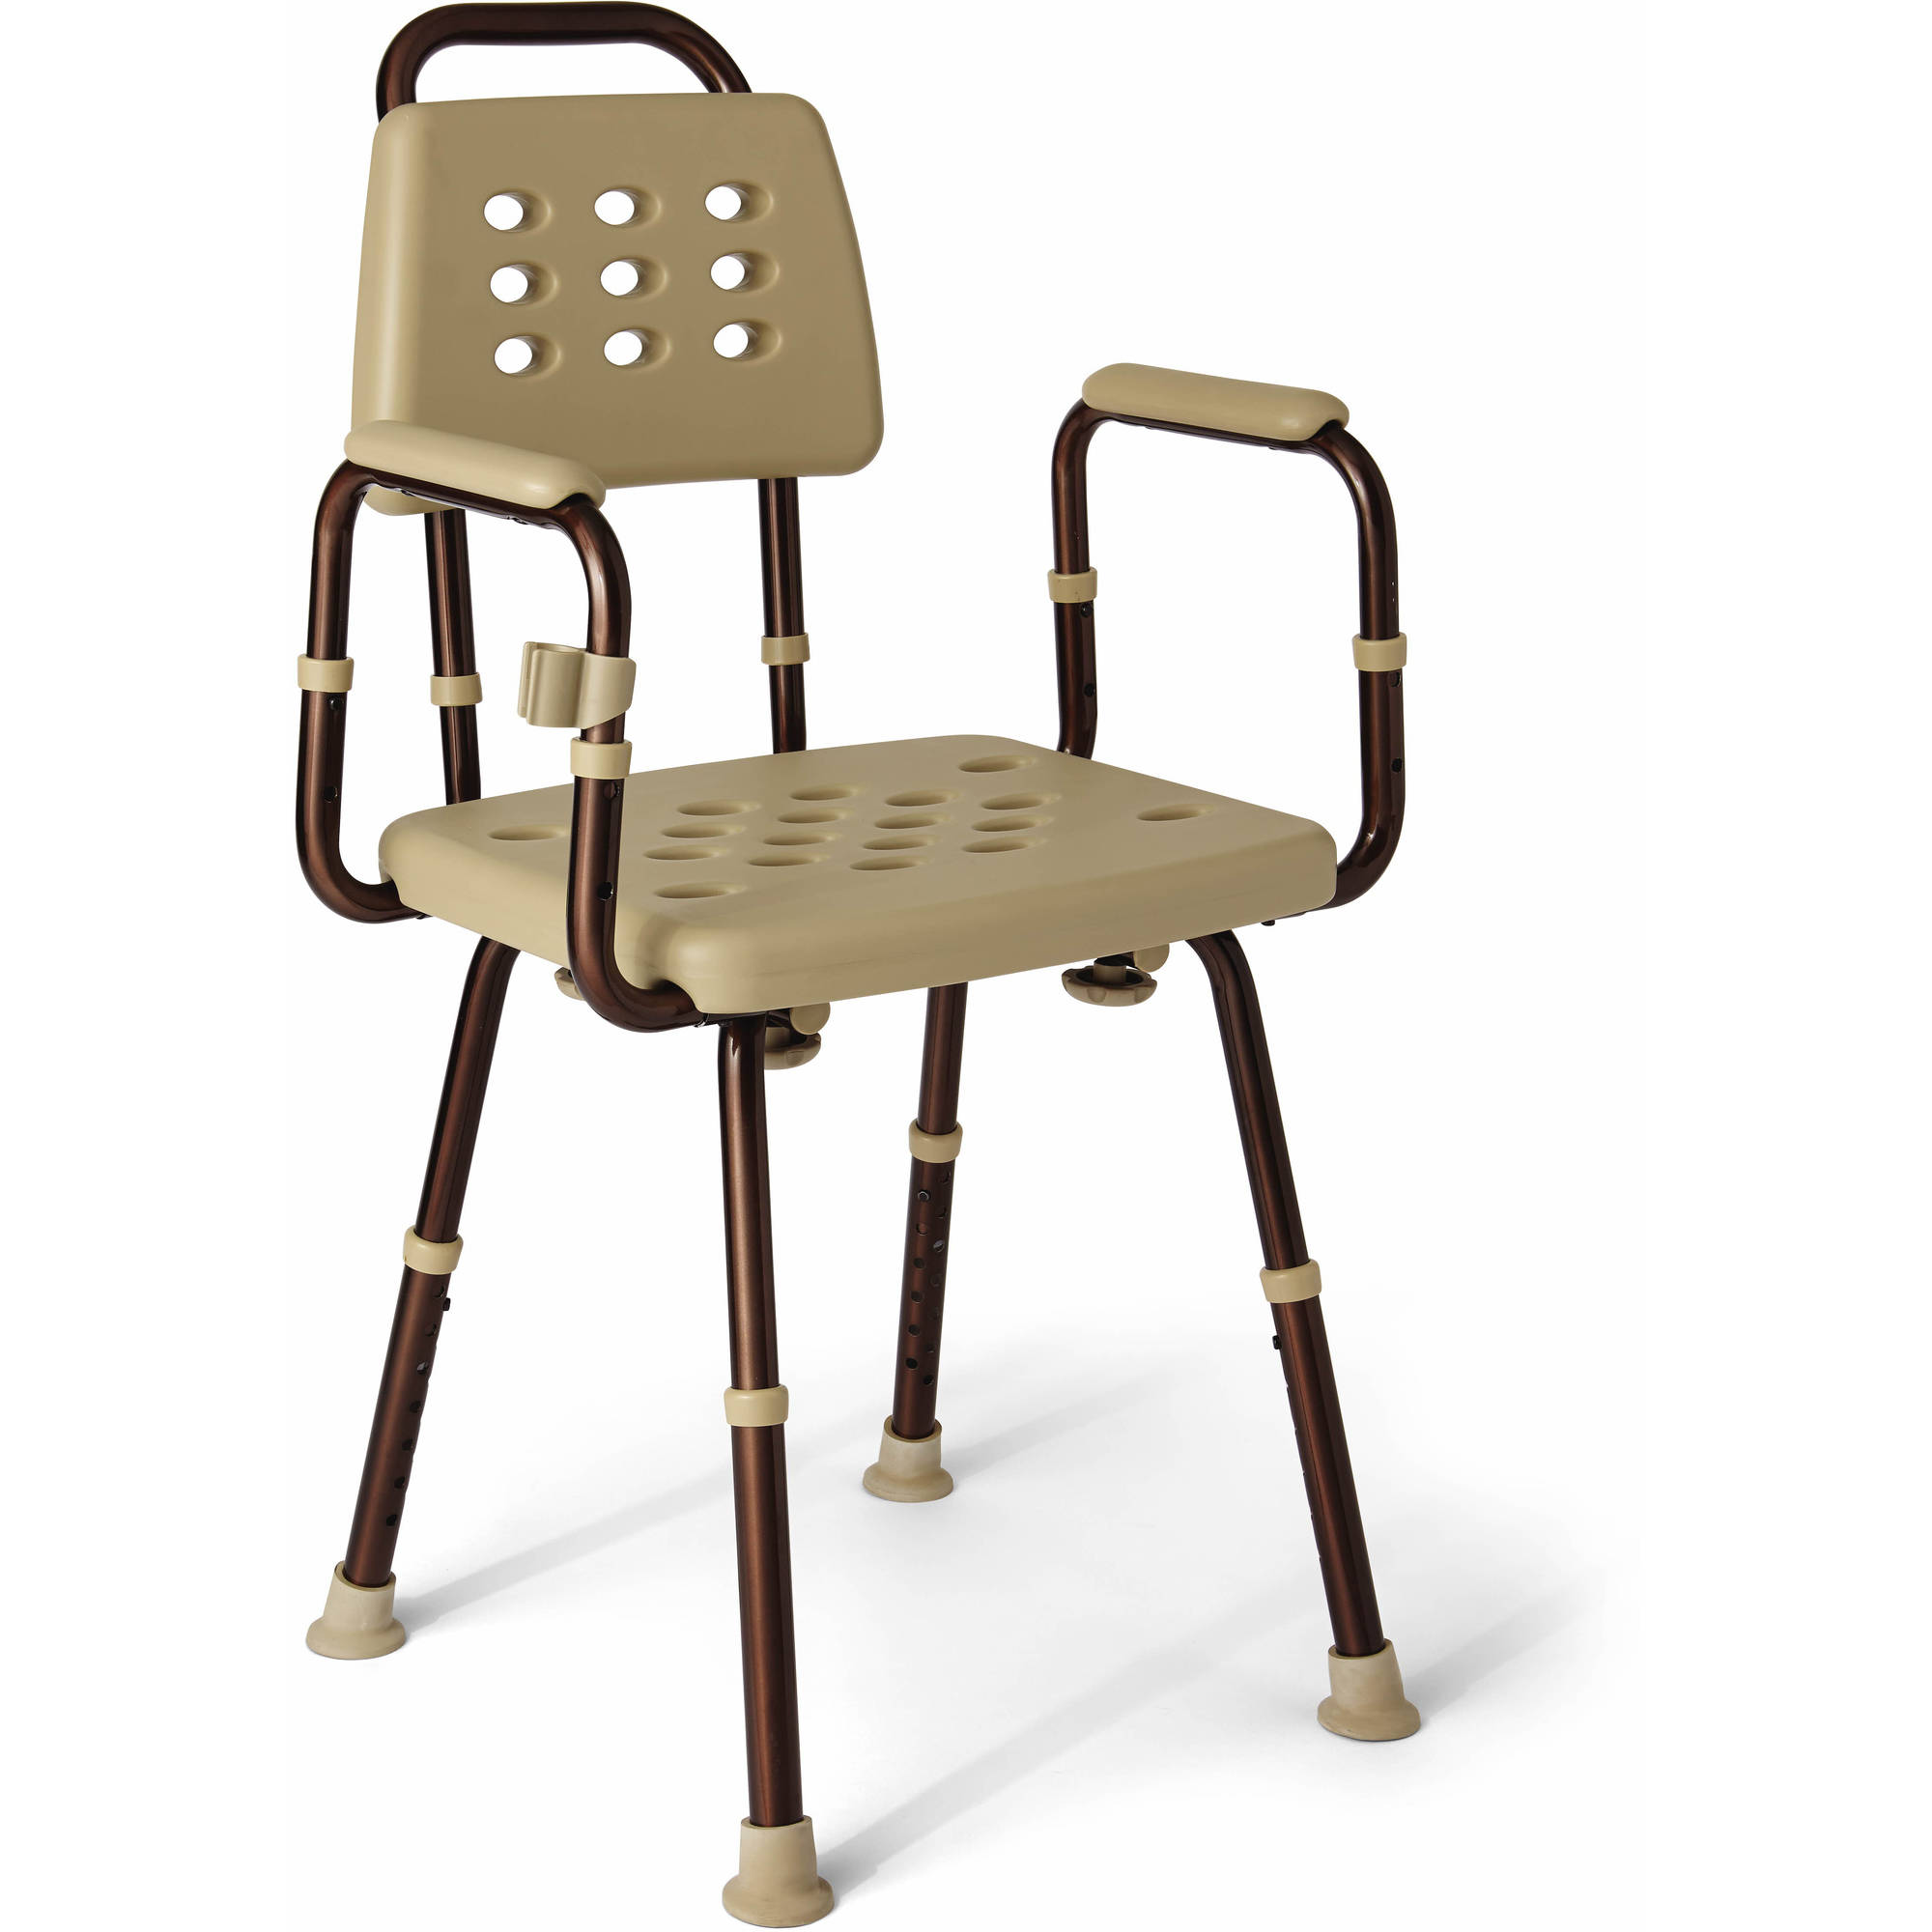 Medline Elements Adjustable Shower Chair with Microban Antimicrobial Treatment